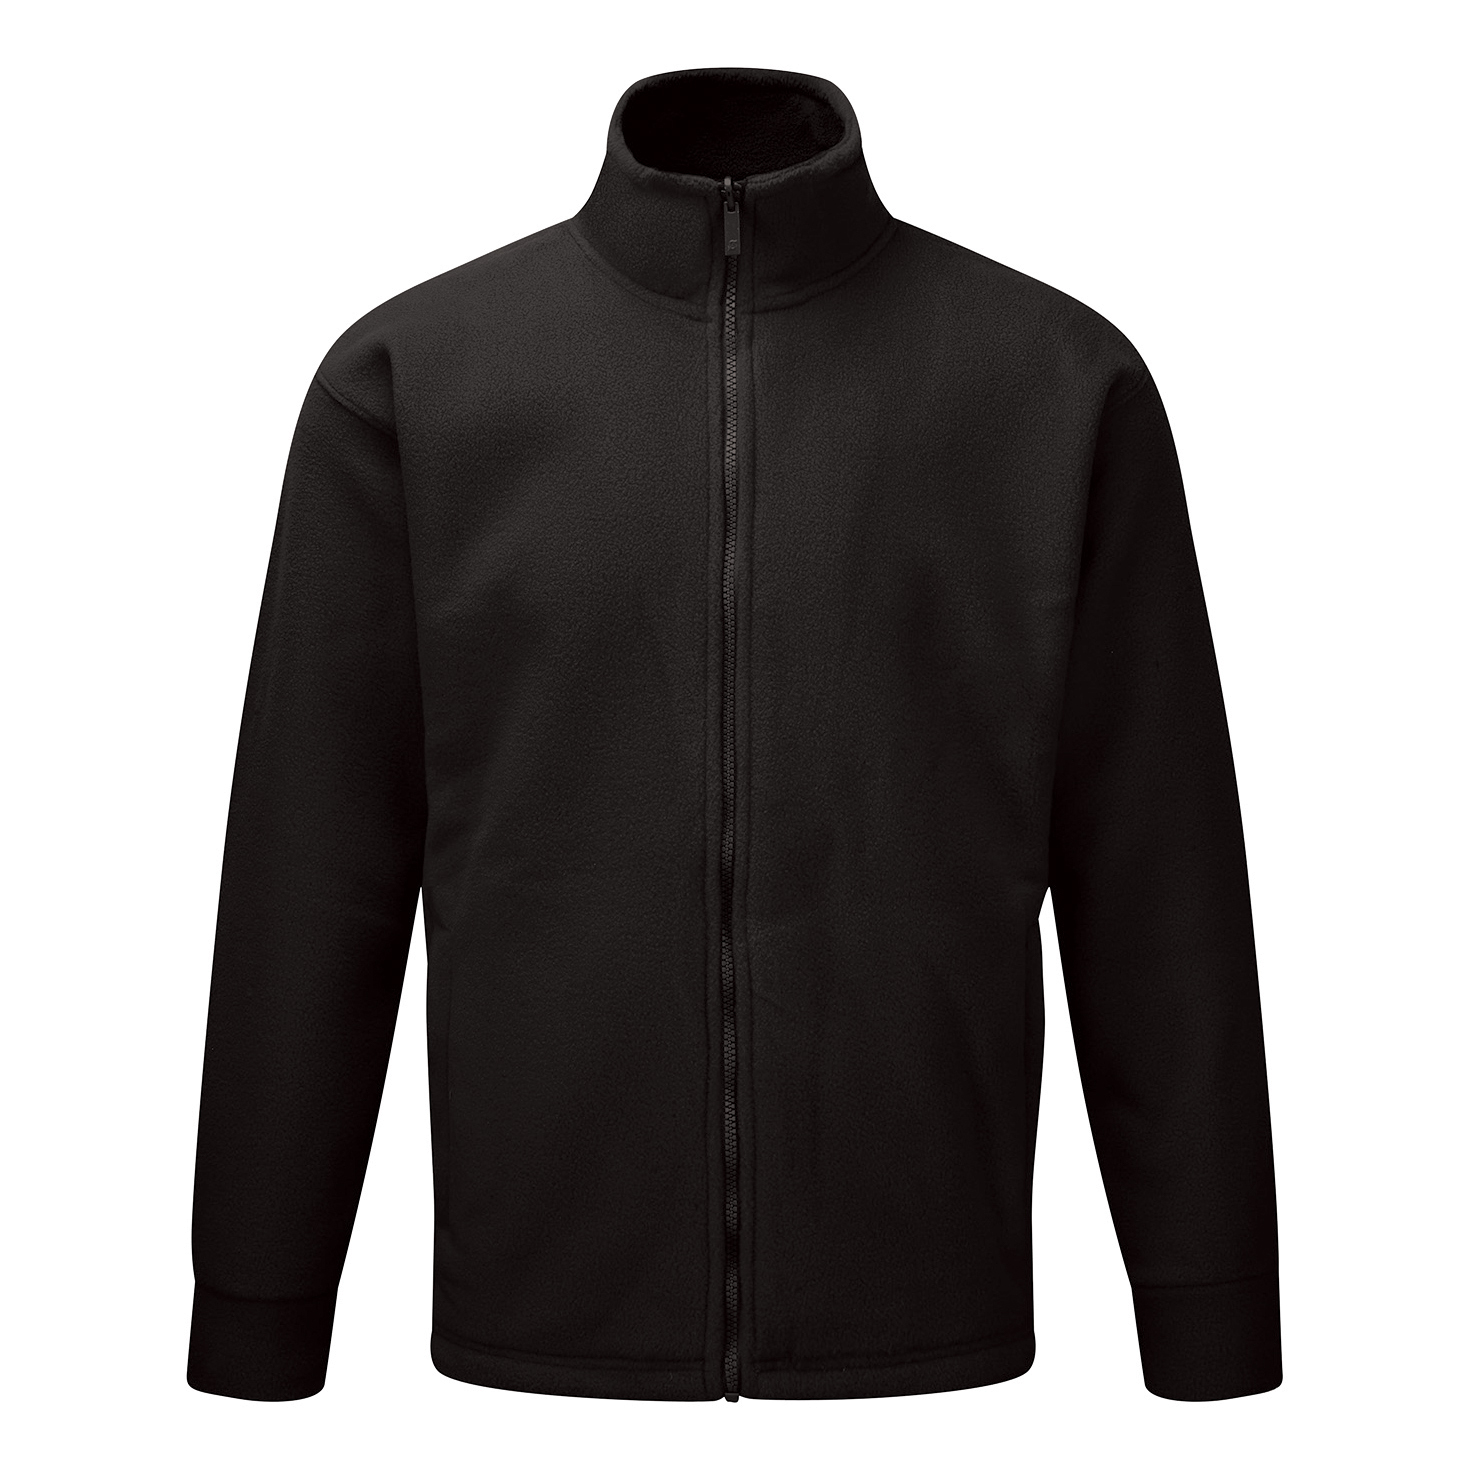 Basic Fleece Jacket Elasticated Cuffs and Full Zip Front 3XLarge Black 1-3 Days Lead Time